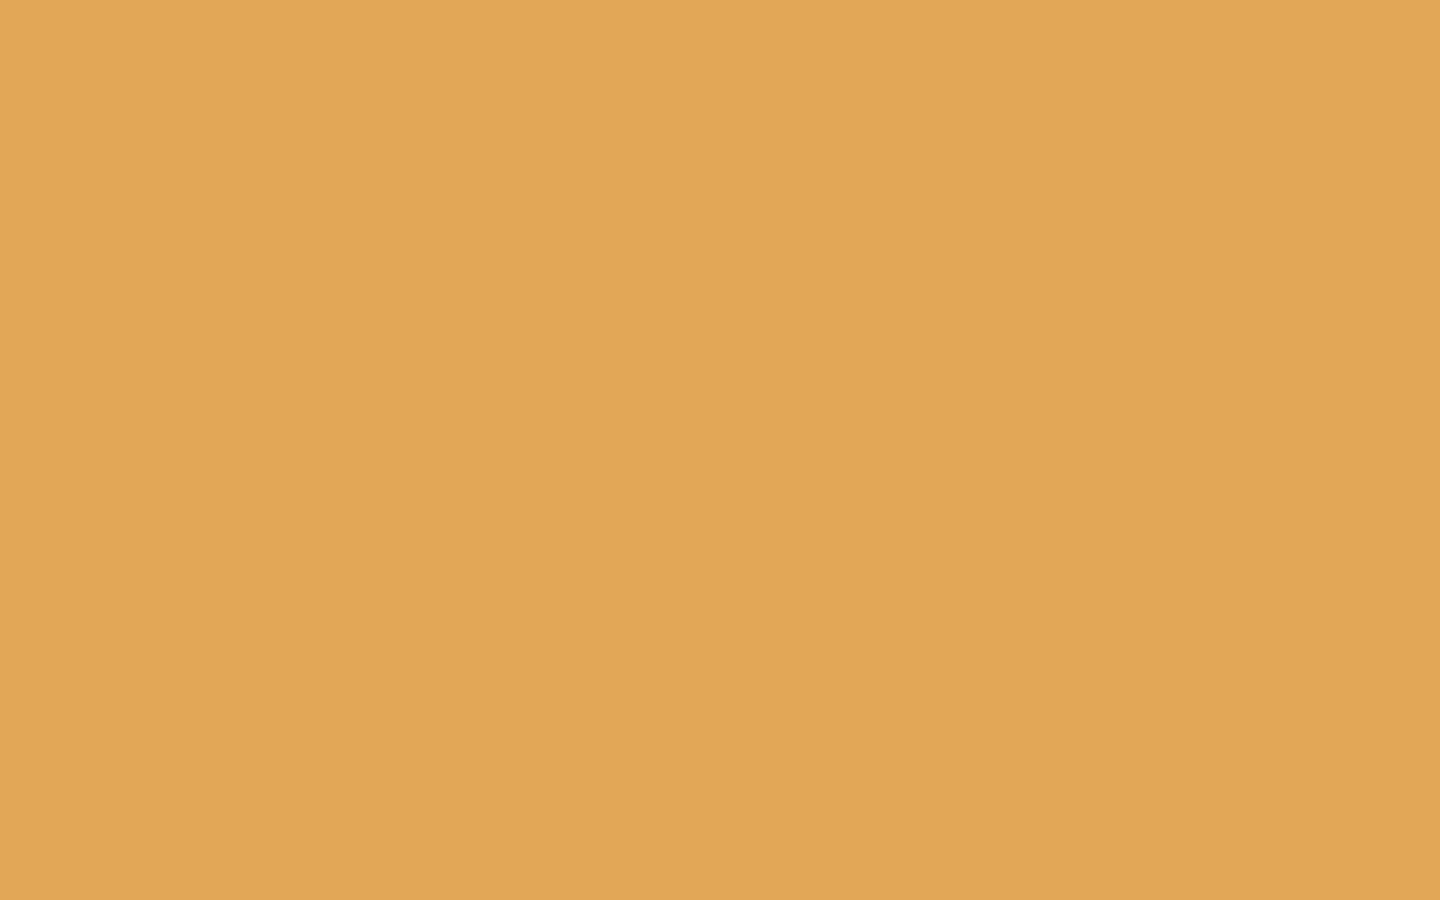 1440x900 Indian Yellow Solid Color Background